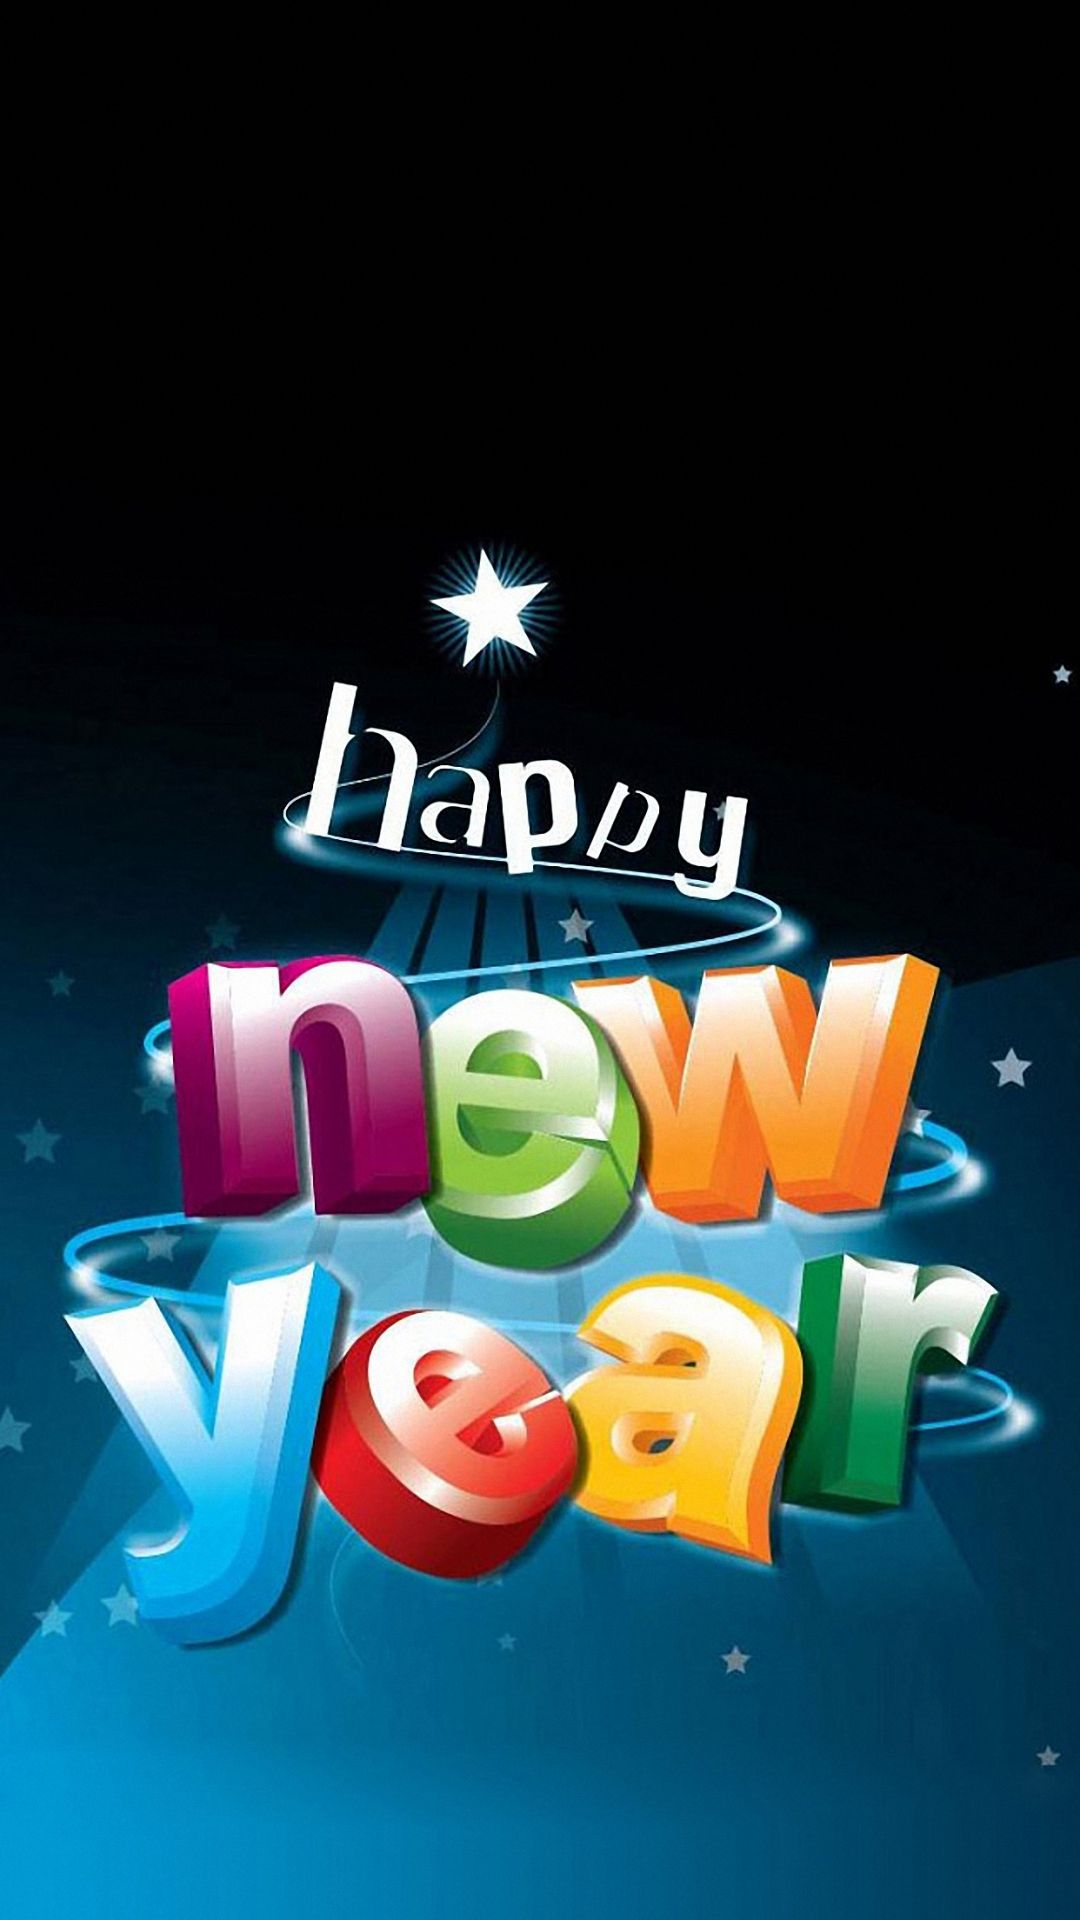 HD happy new year text iPhone 6 / 6s / Plus wallpapers